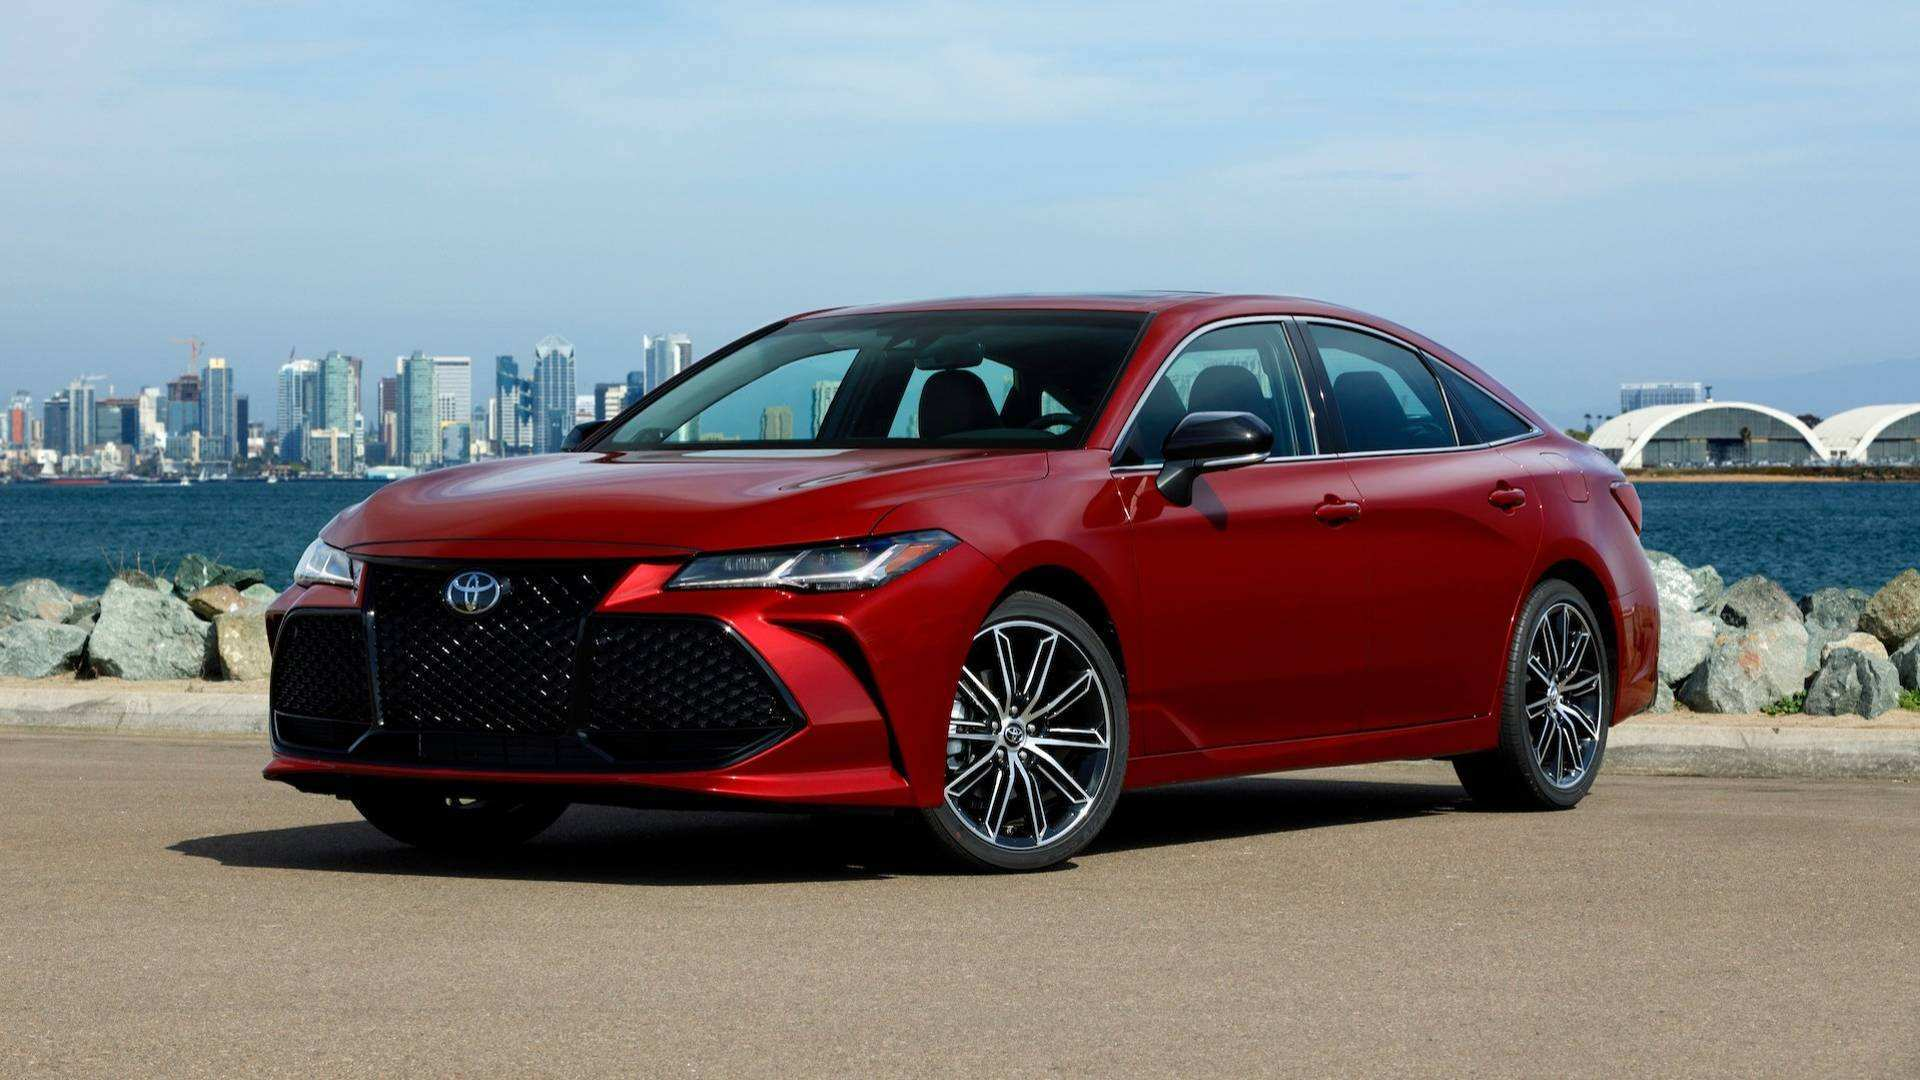 81 New 2019 Toyota Avalon Hybrid Price